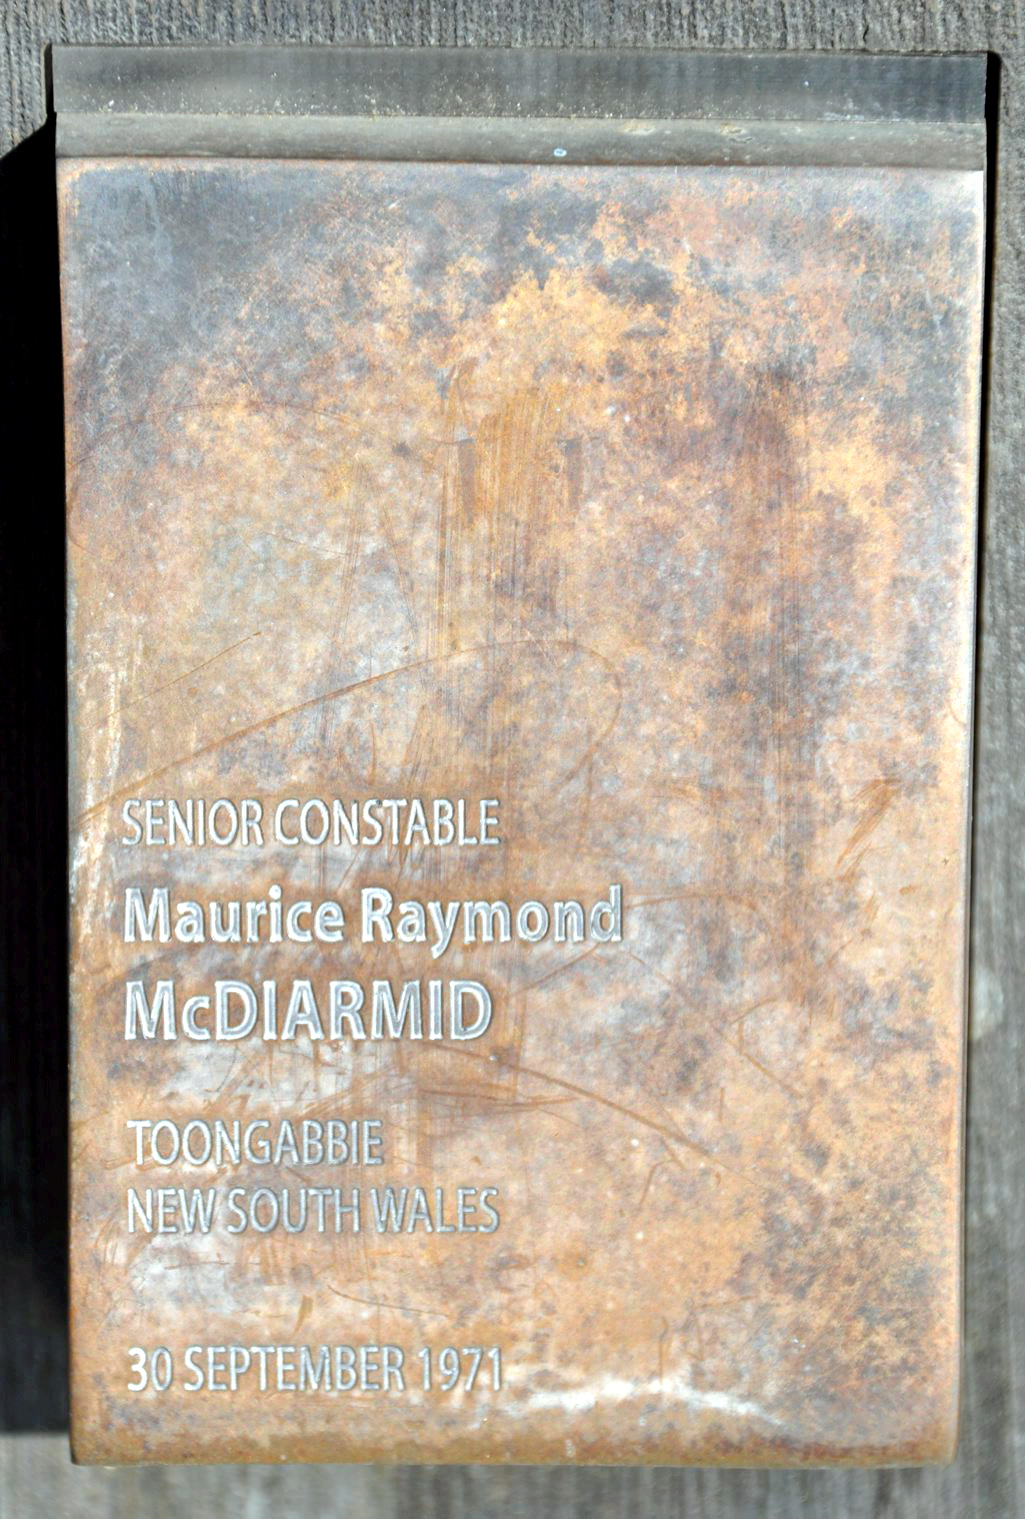 Touch Plate at the National Police Wall for Remembrance, Canberra. Maurice Raymond McDIARMID